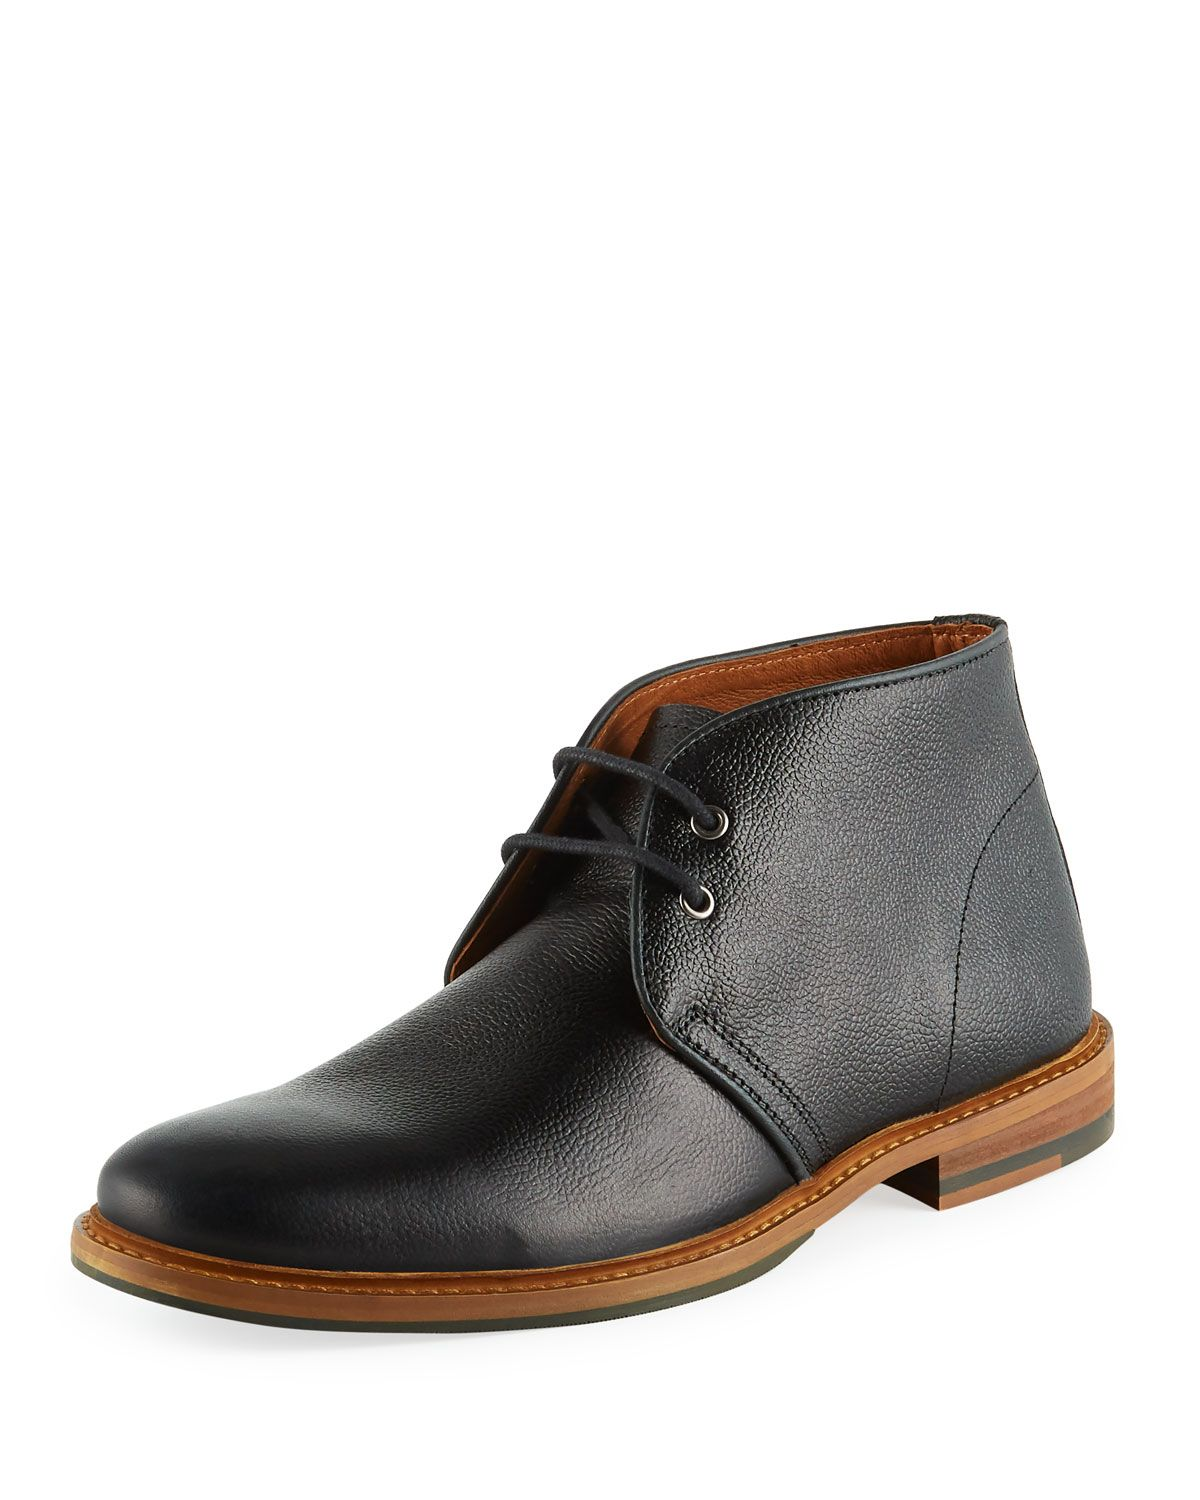 3a30c612b20 SUPPLY LAB MEN'S ELI LEATHER CHUKKA BOOTS. #supplylab #shoes ...